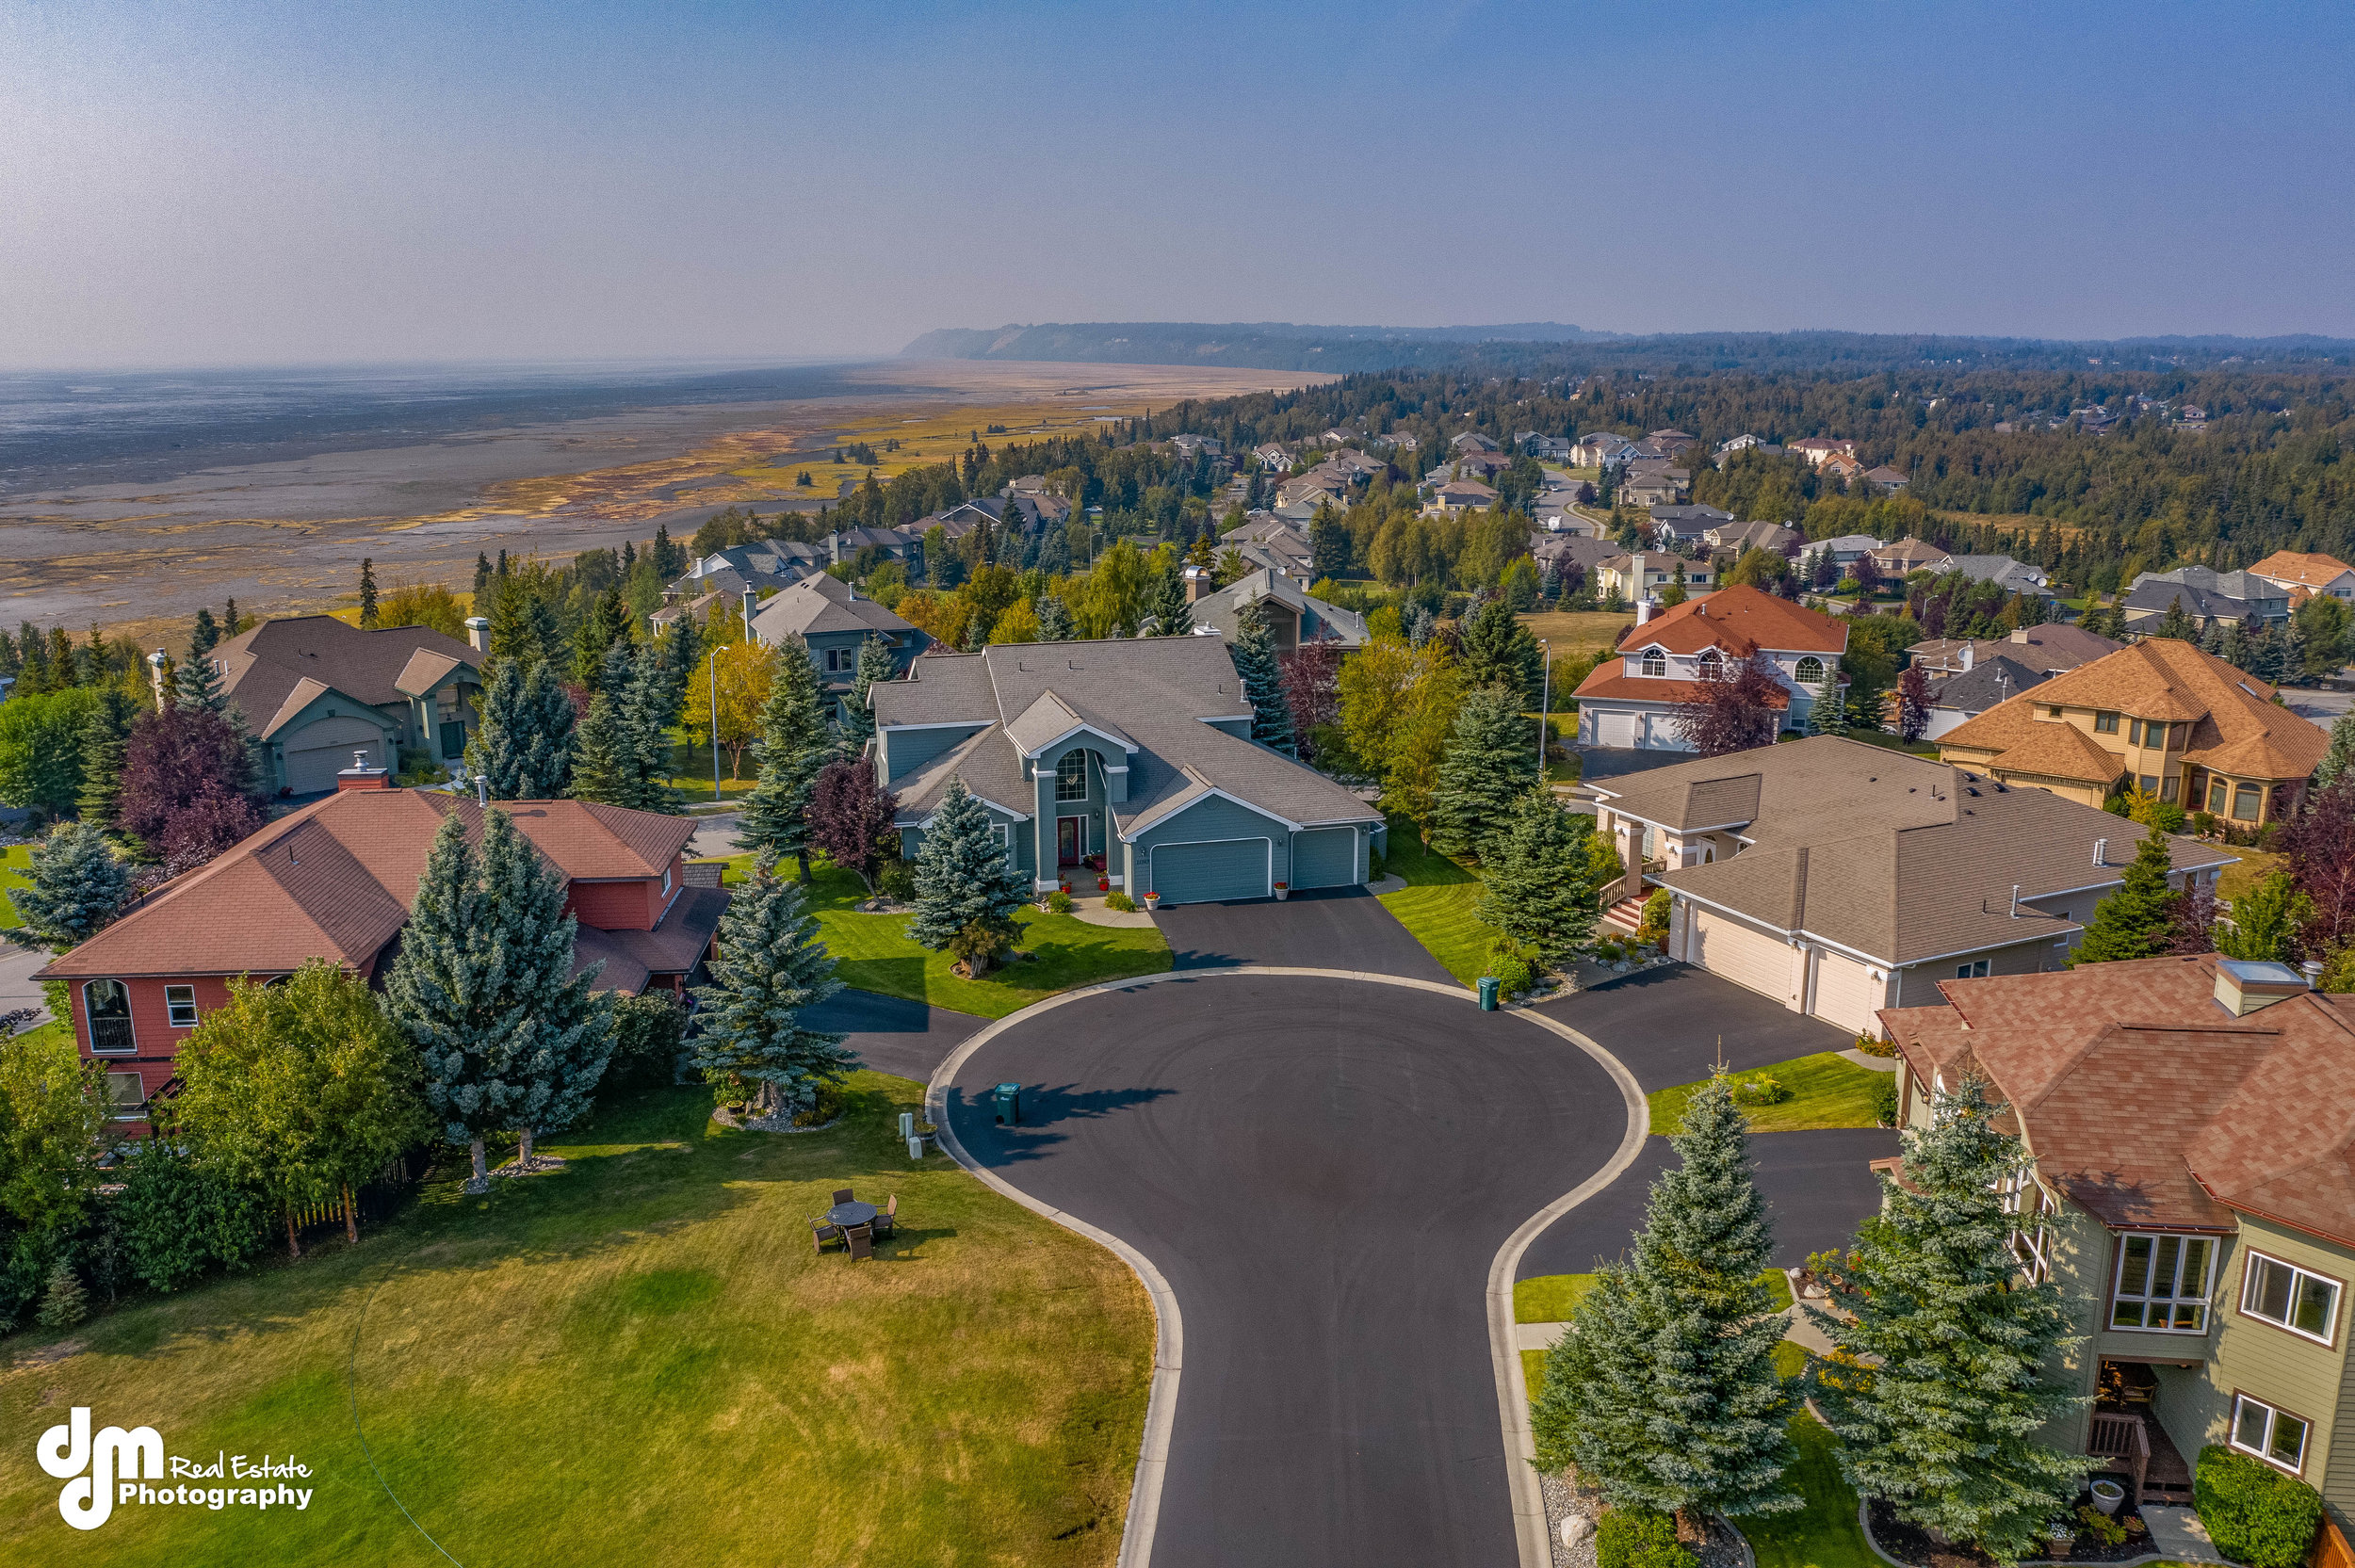 anchorage_aerial_photography